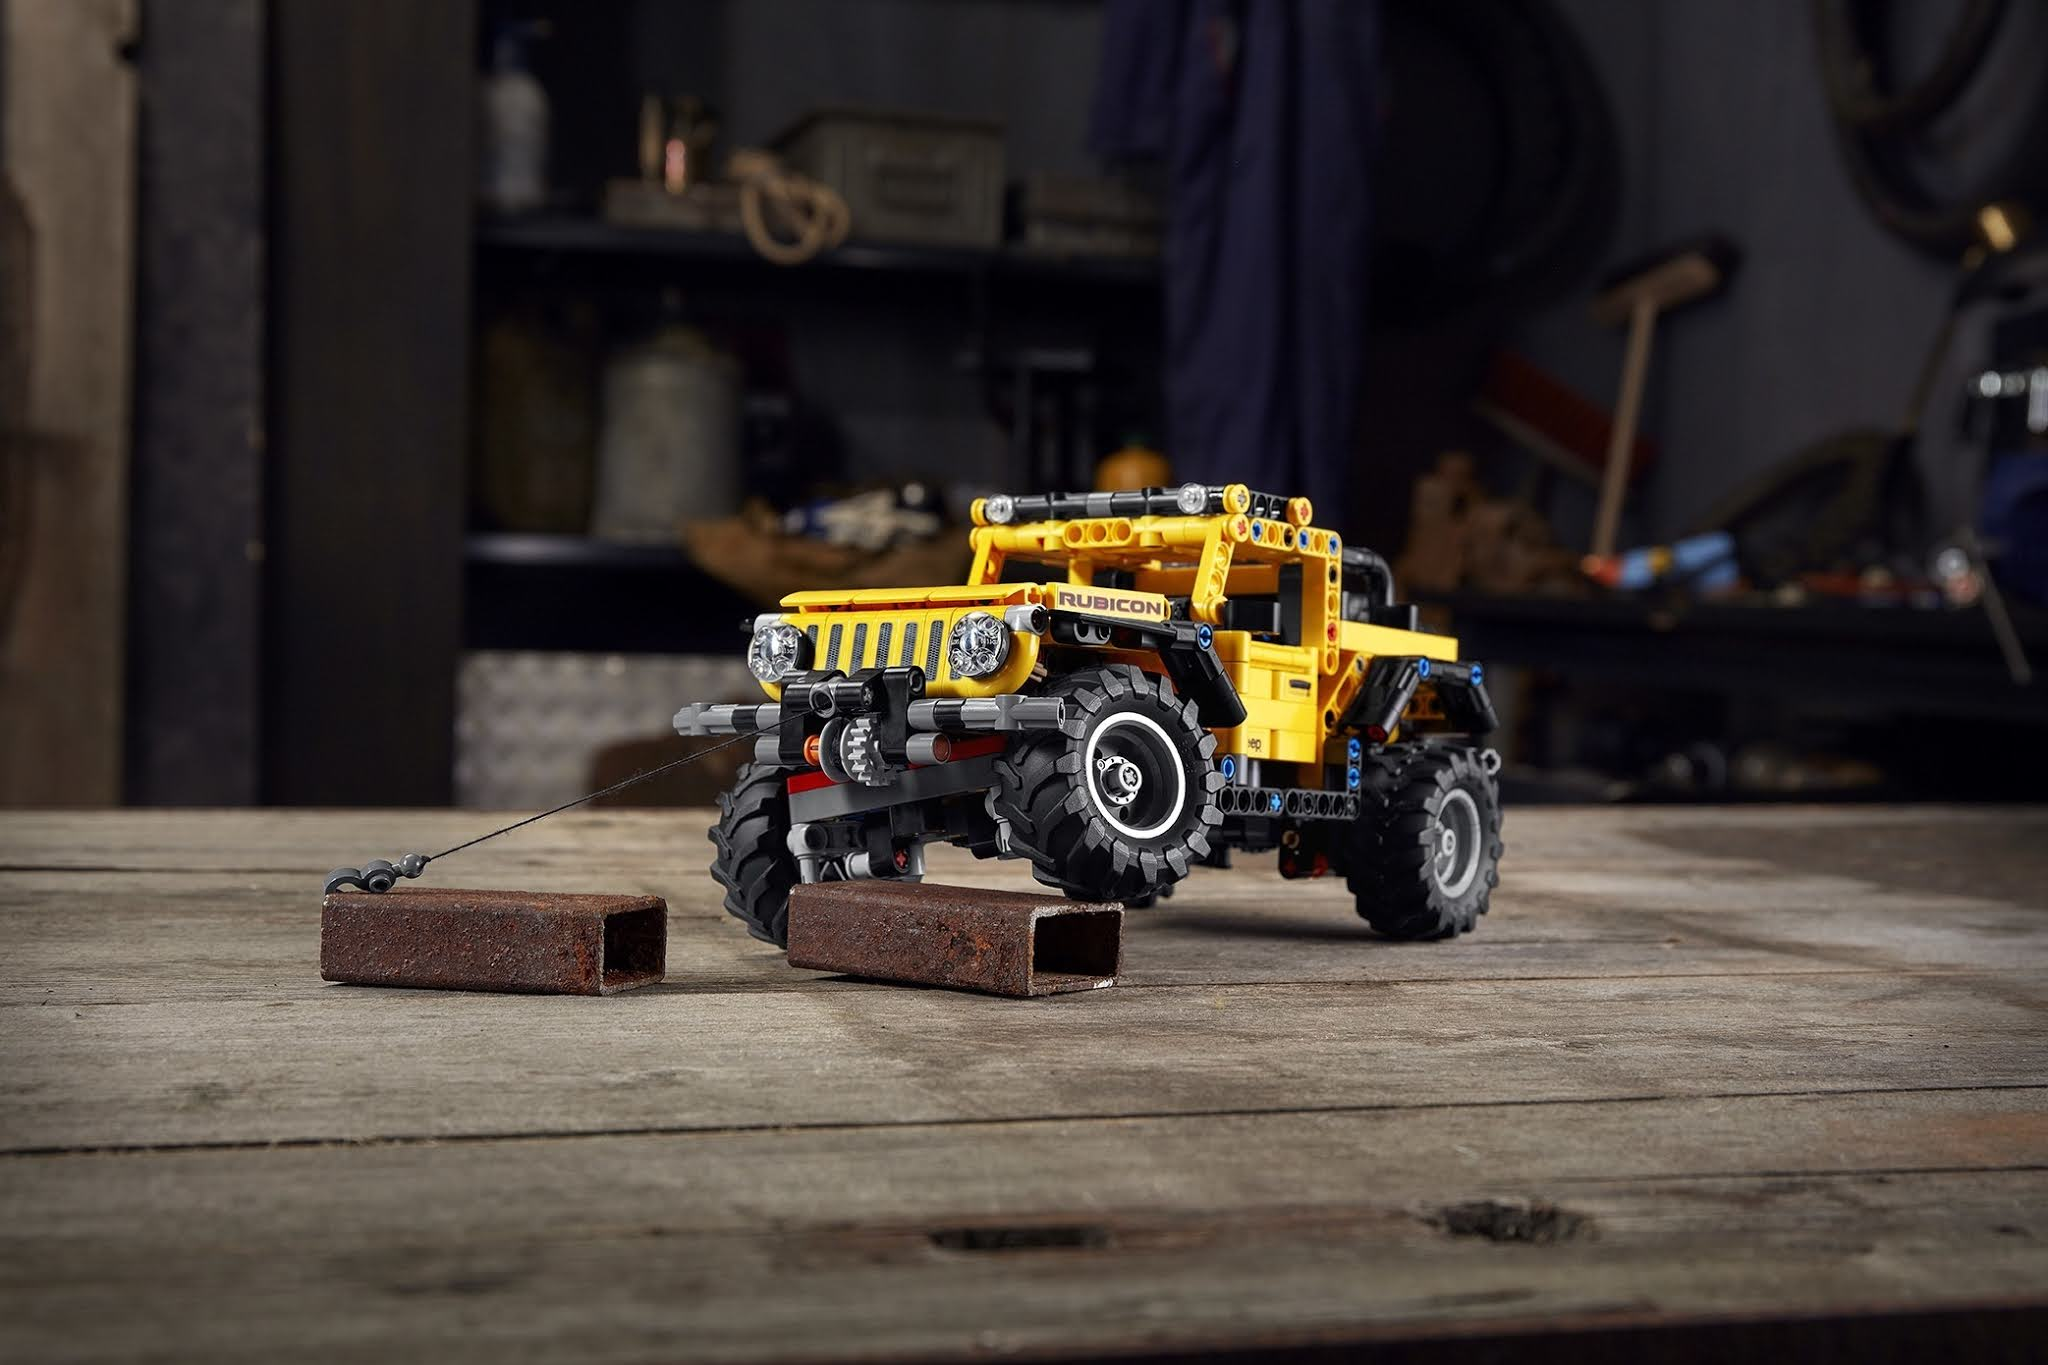 Make the Whole World Your Playground With the New LEGO Technic Jeep Wrangler